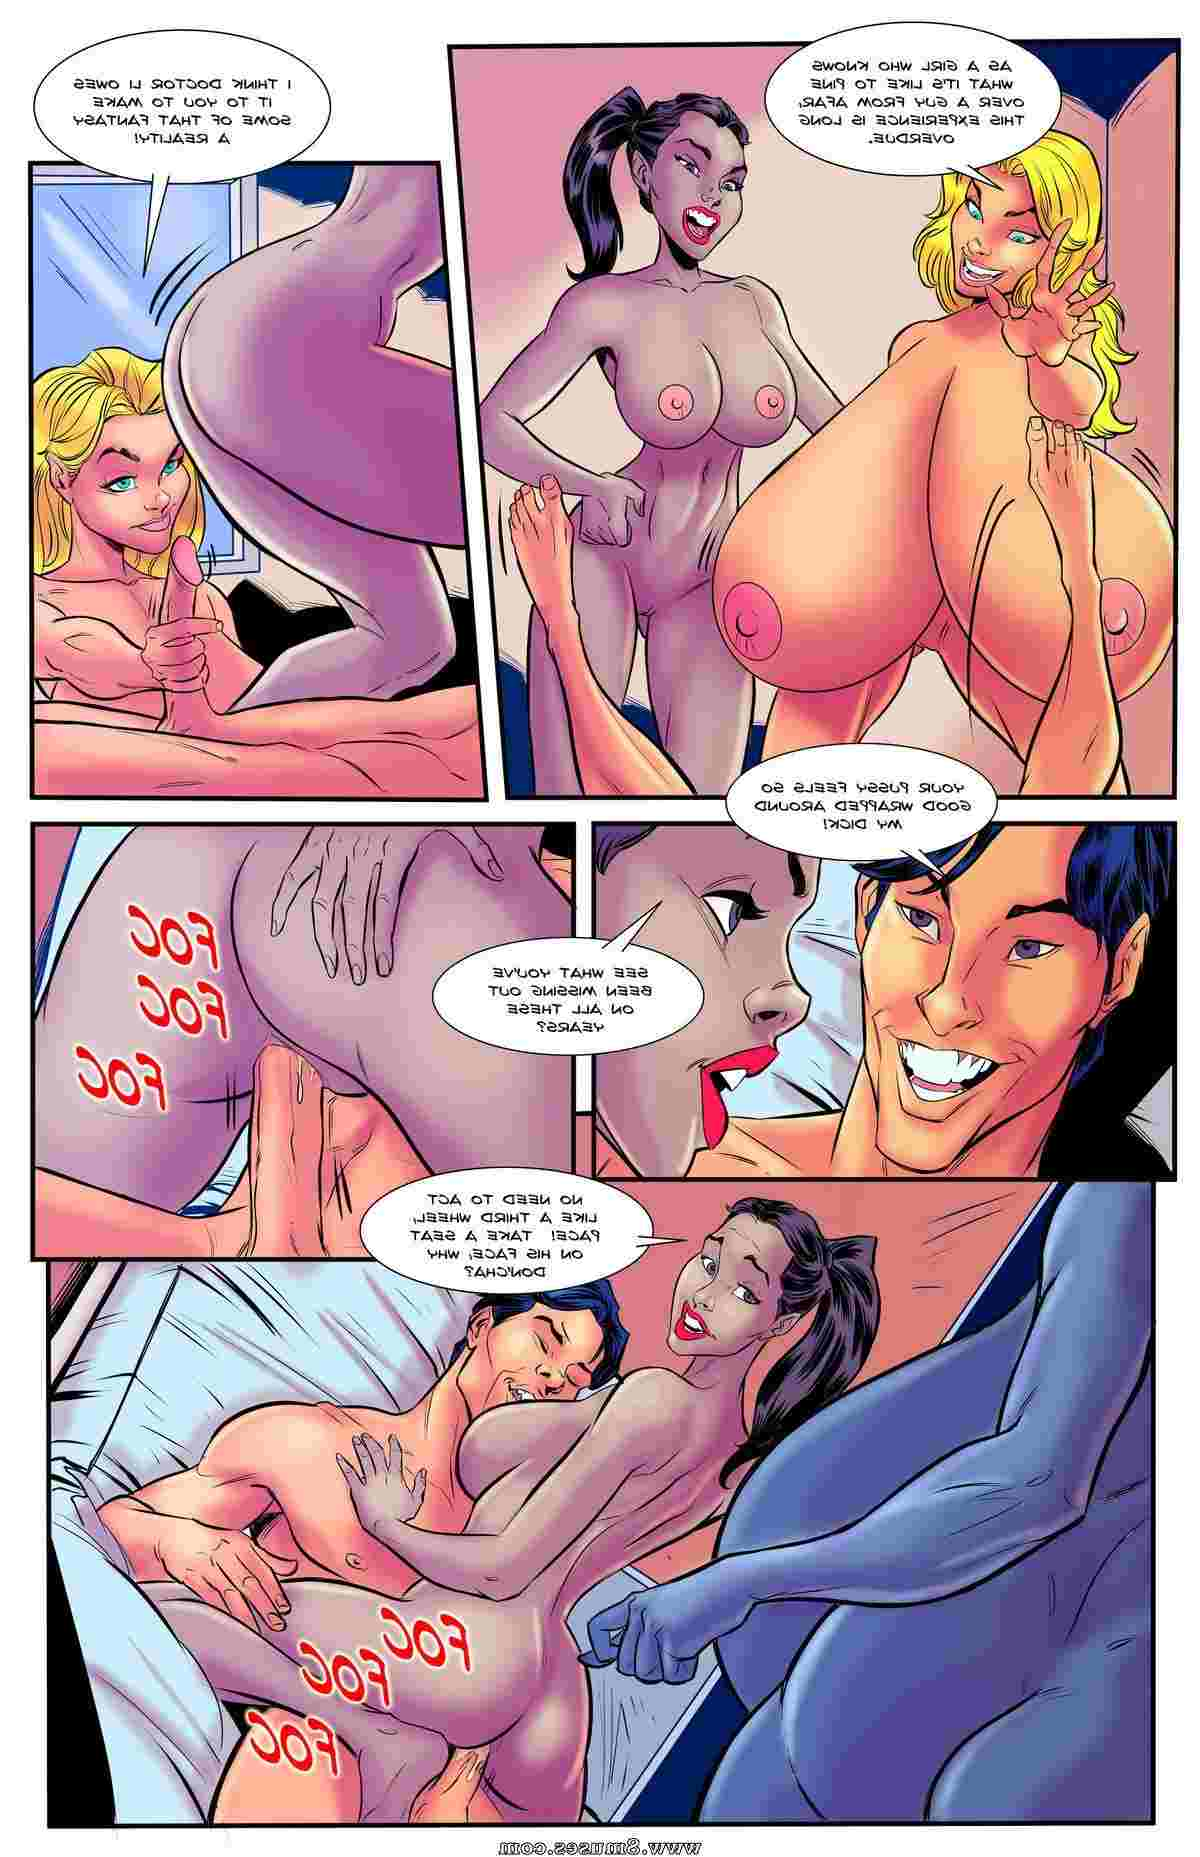 BE-Story-Club-Comics/Massive Massive__8muses_-_Sex_and_Porn_Comics_36.jpg